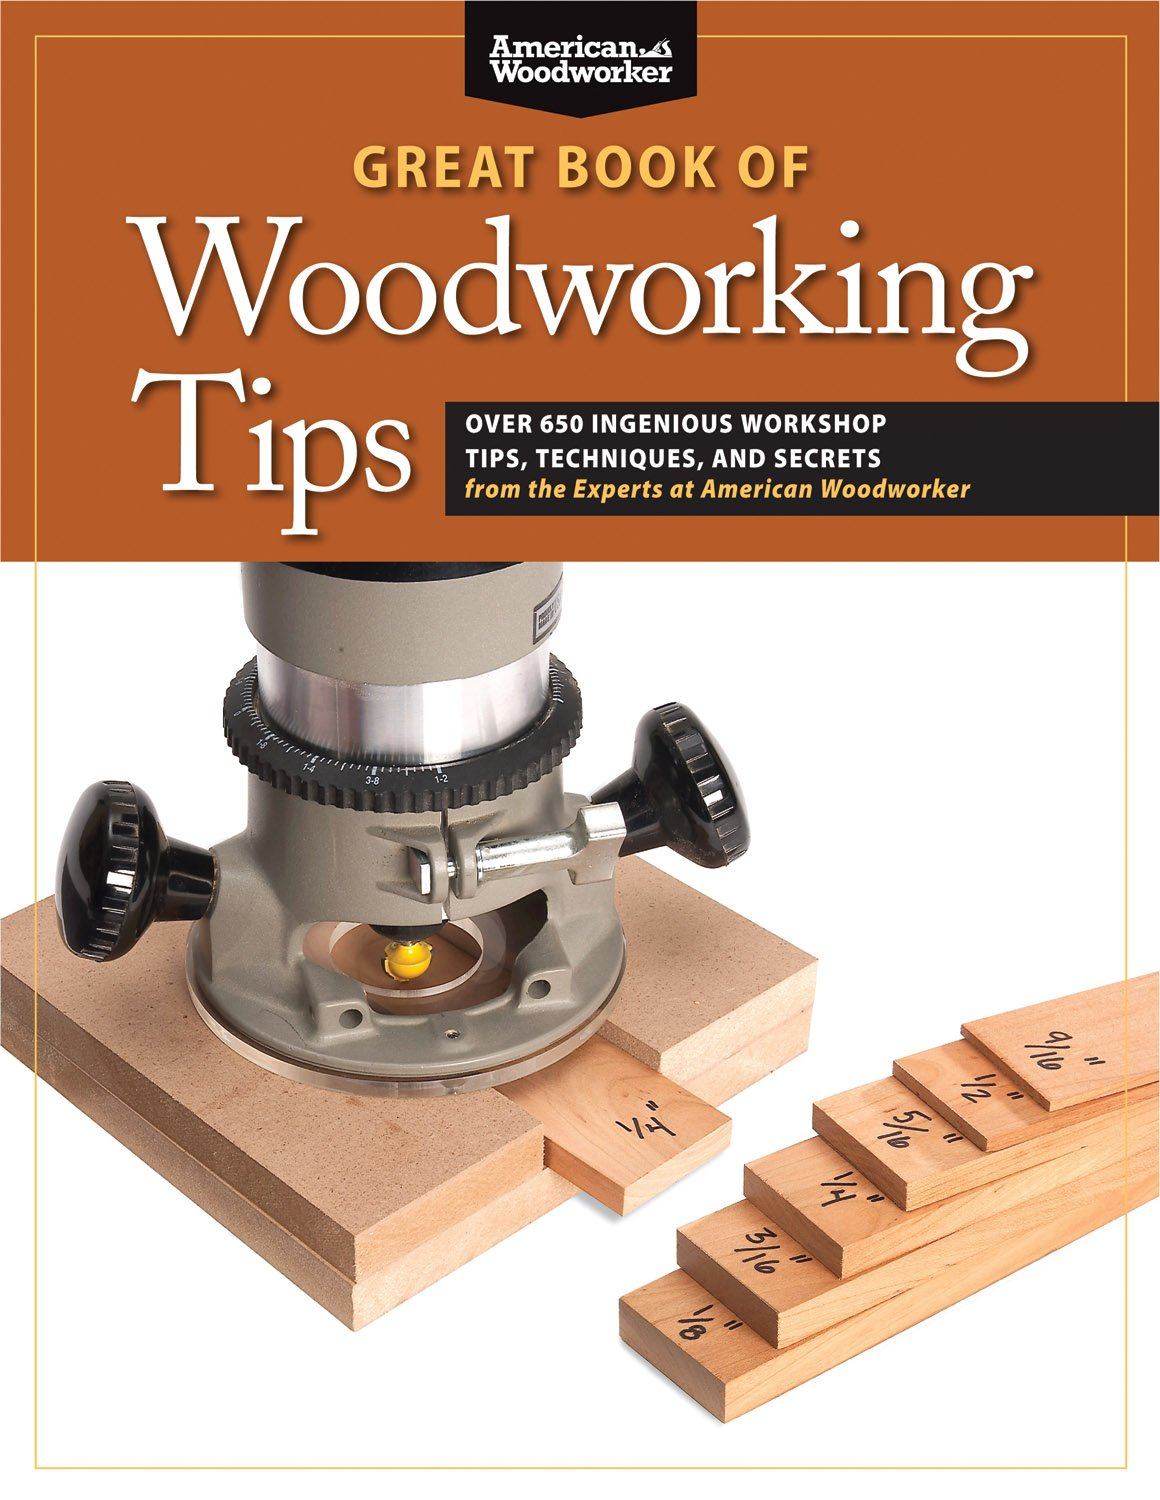 Great Book Of Woodworking Tips Over 650 Ingenious Workshop Tips Techniques And Secrets From The Experts At American Woodworker Fox Chapel Publishing Shop Tested And Photo Illustrated Johnson Randy 0858924003375 Amazon Com Books